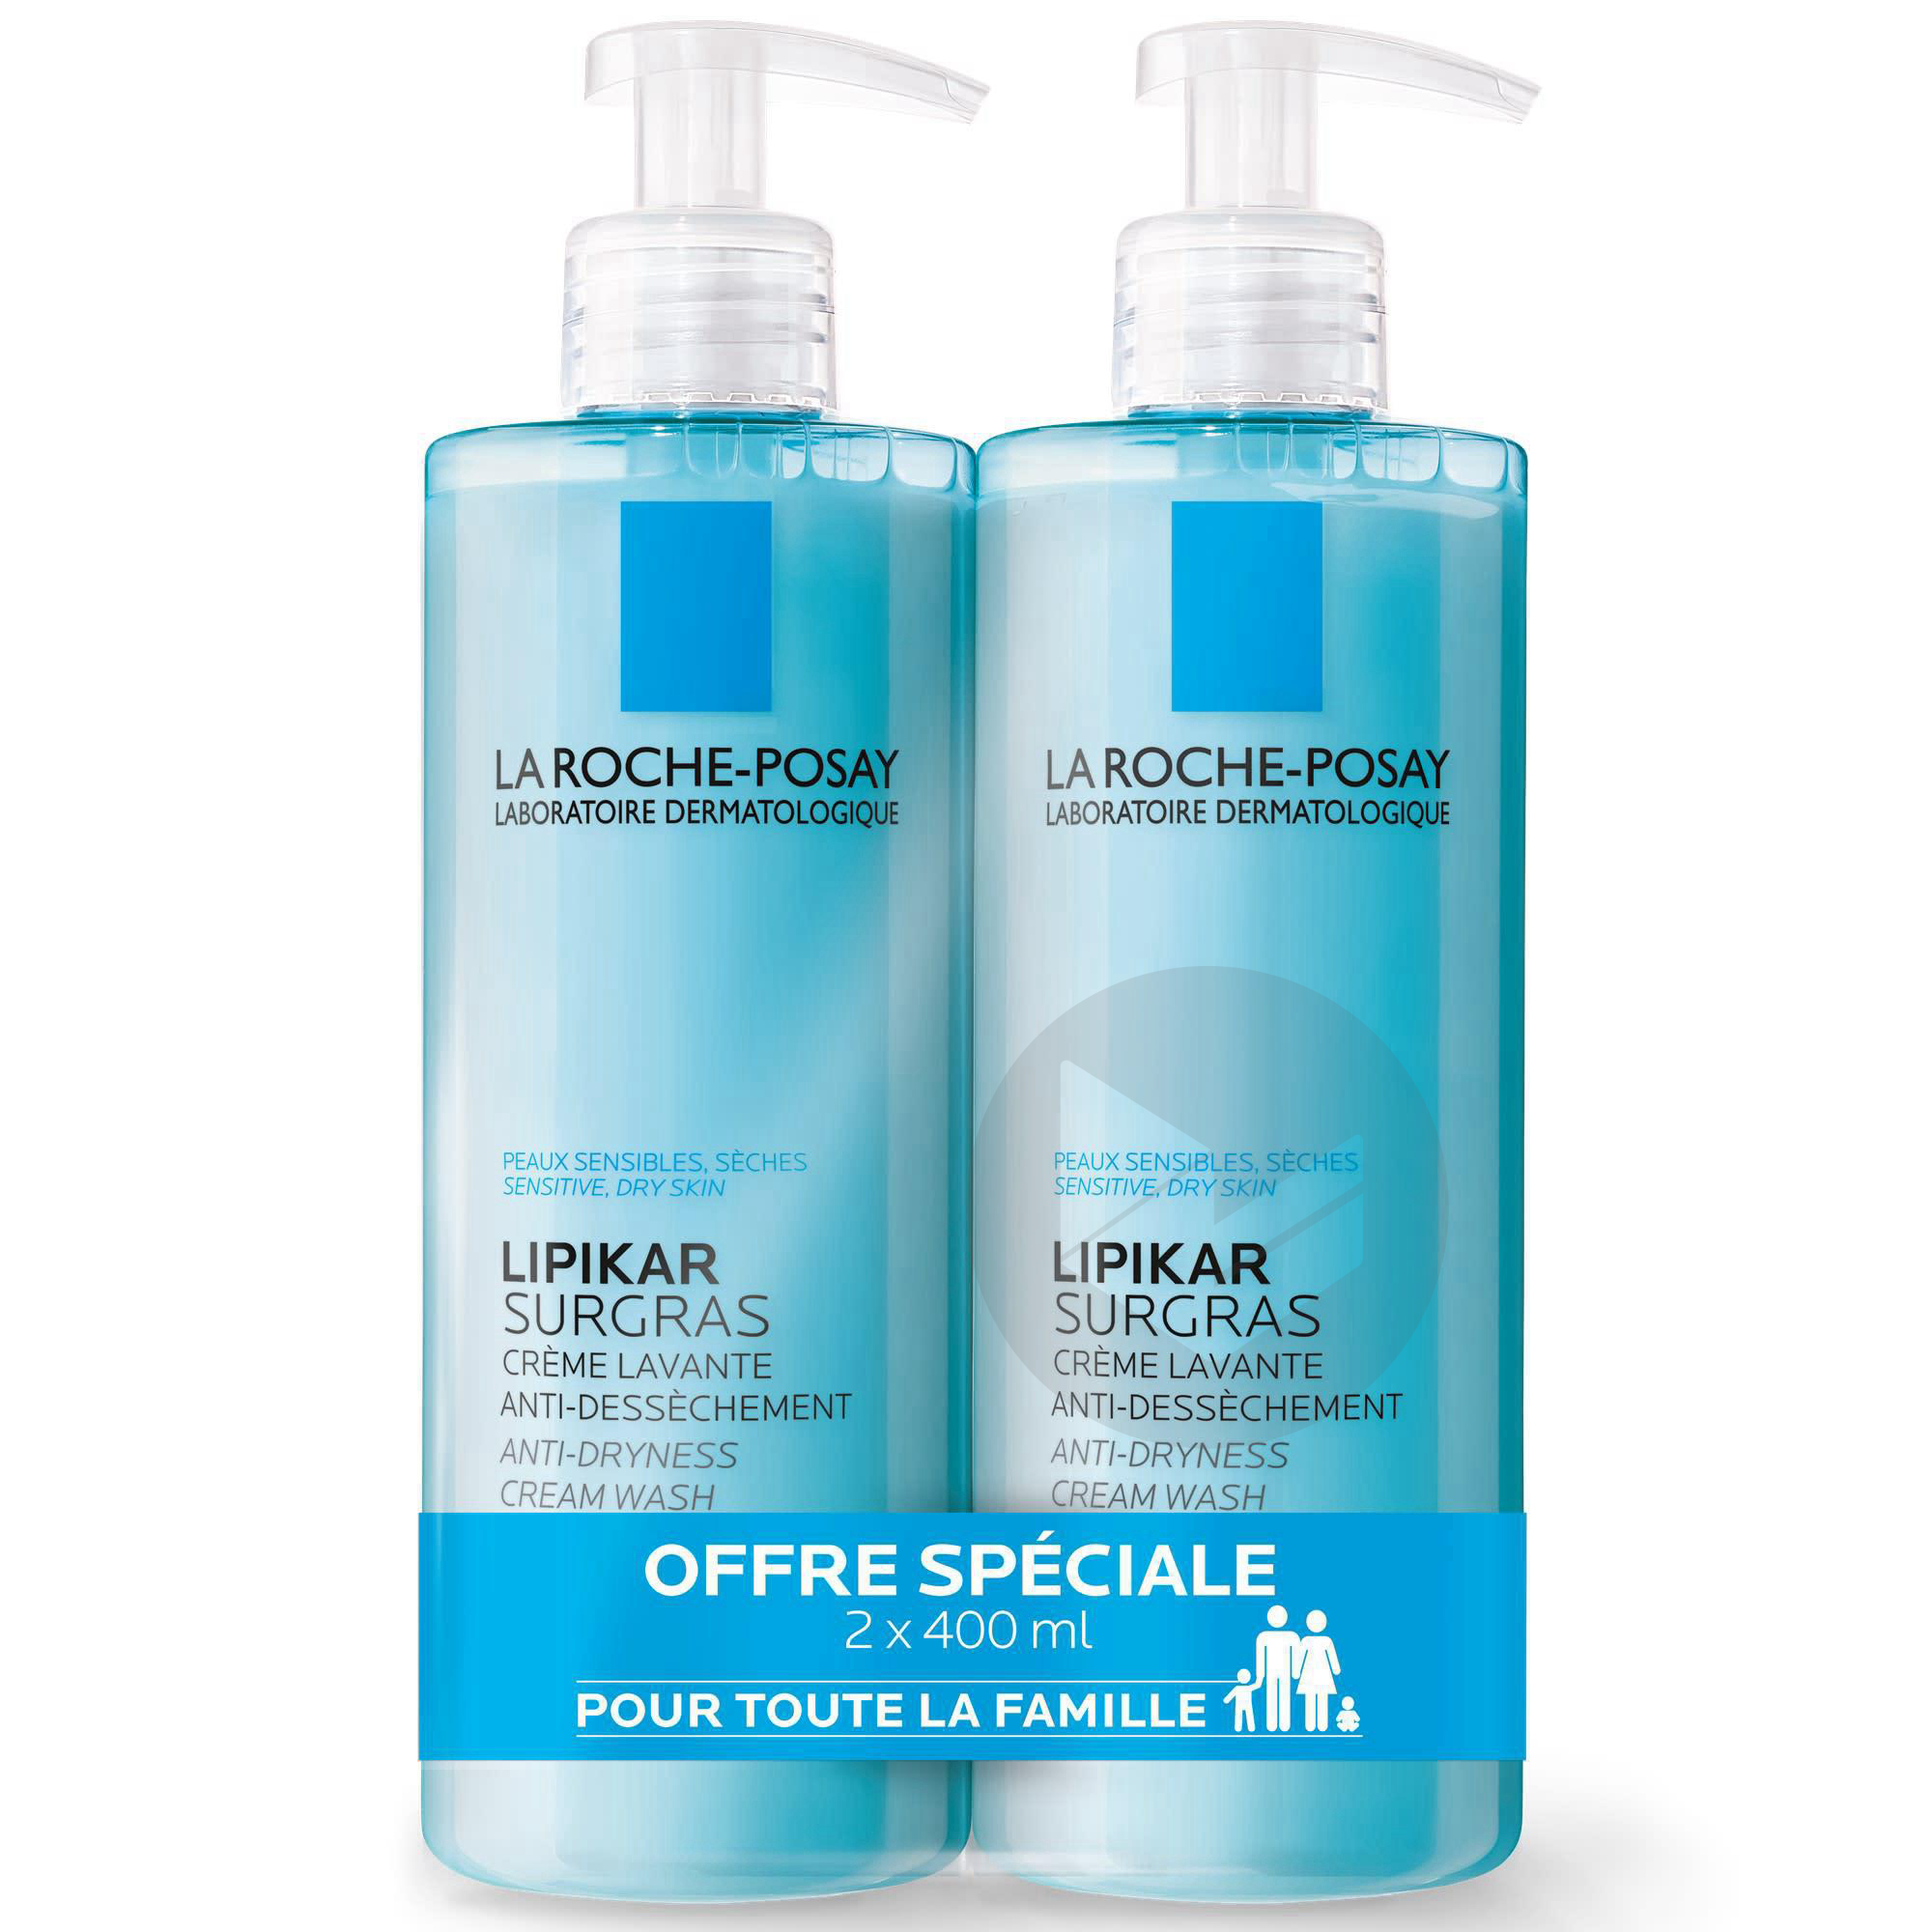 Lot 2 Lipikar Surgras Creme Lavante Anti Dessechement 400 Ml